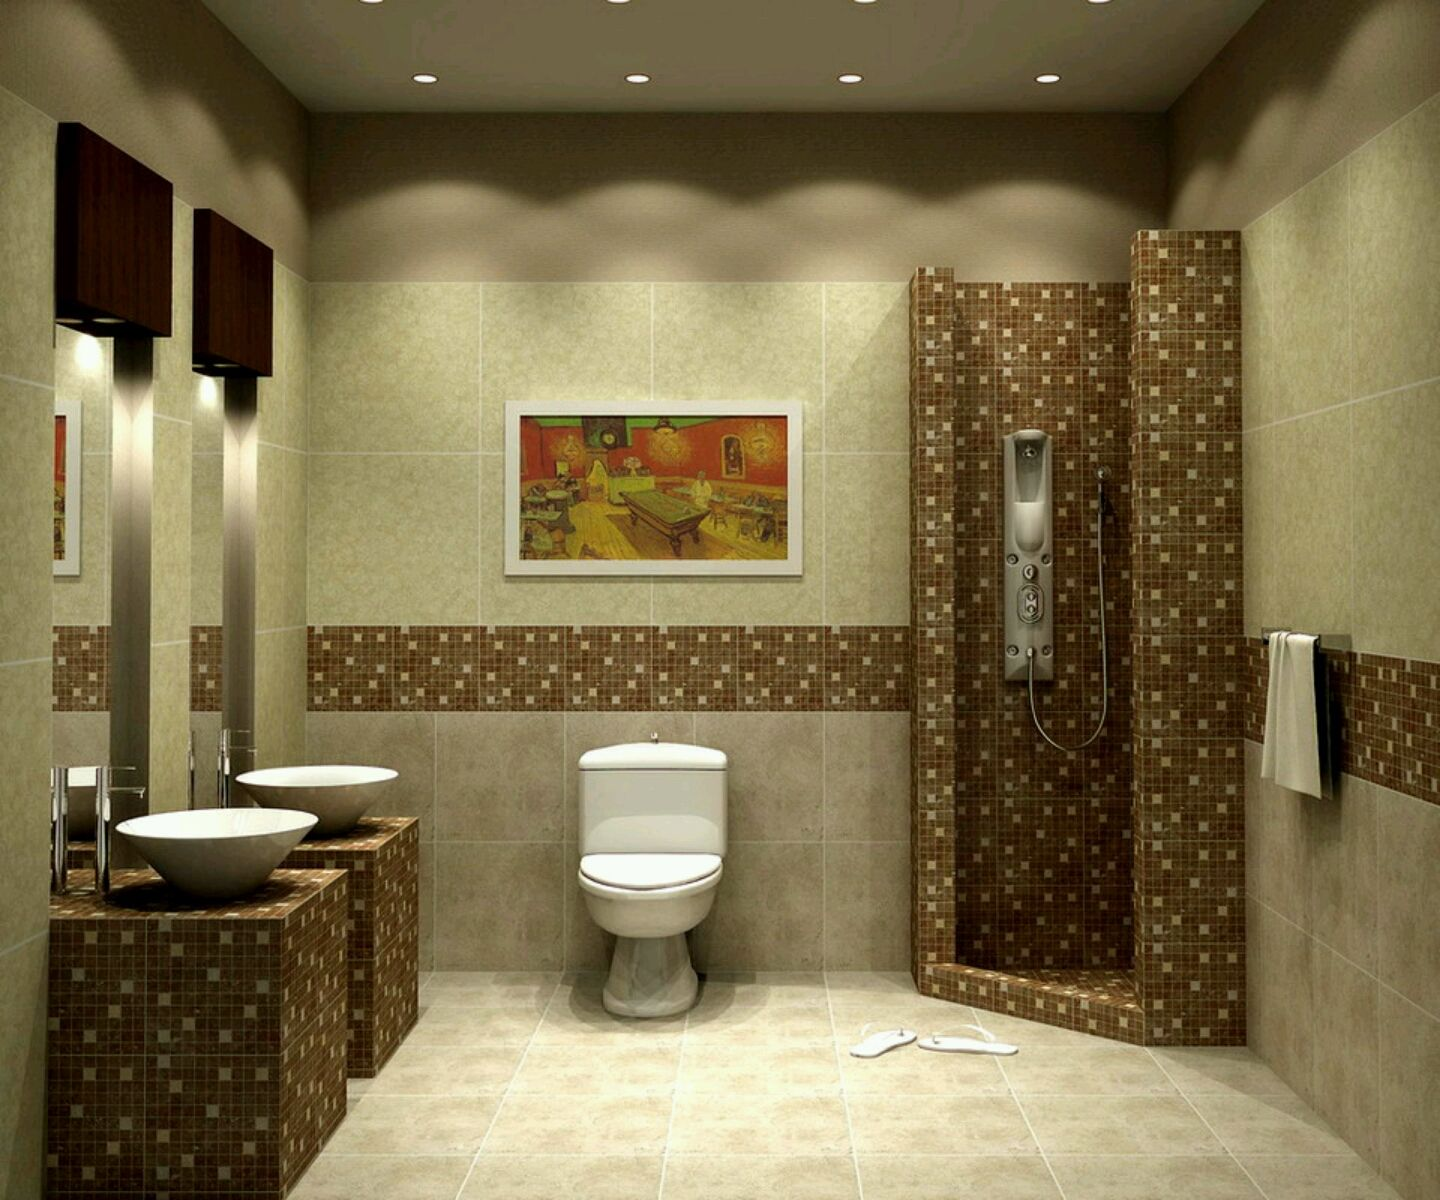 Bathroom Half Decorating Design Ideas White Wall Ceramic Tiles Floor Plans Wood Brown Wooden Cabinet Black Toilet Closet Bathub Shower Mirror